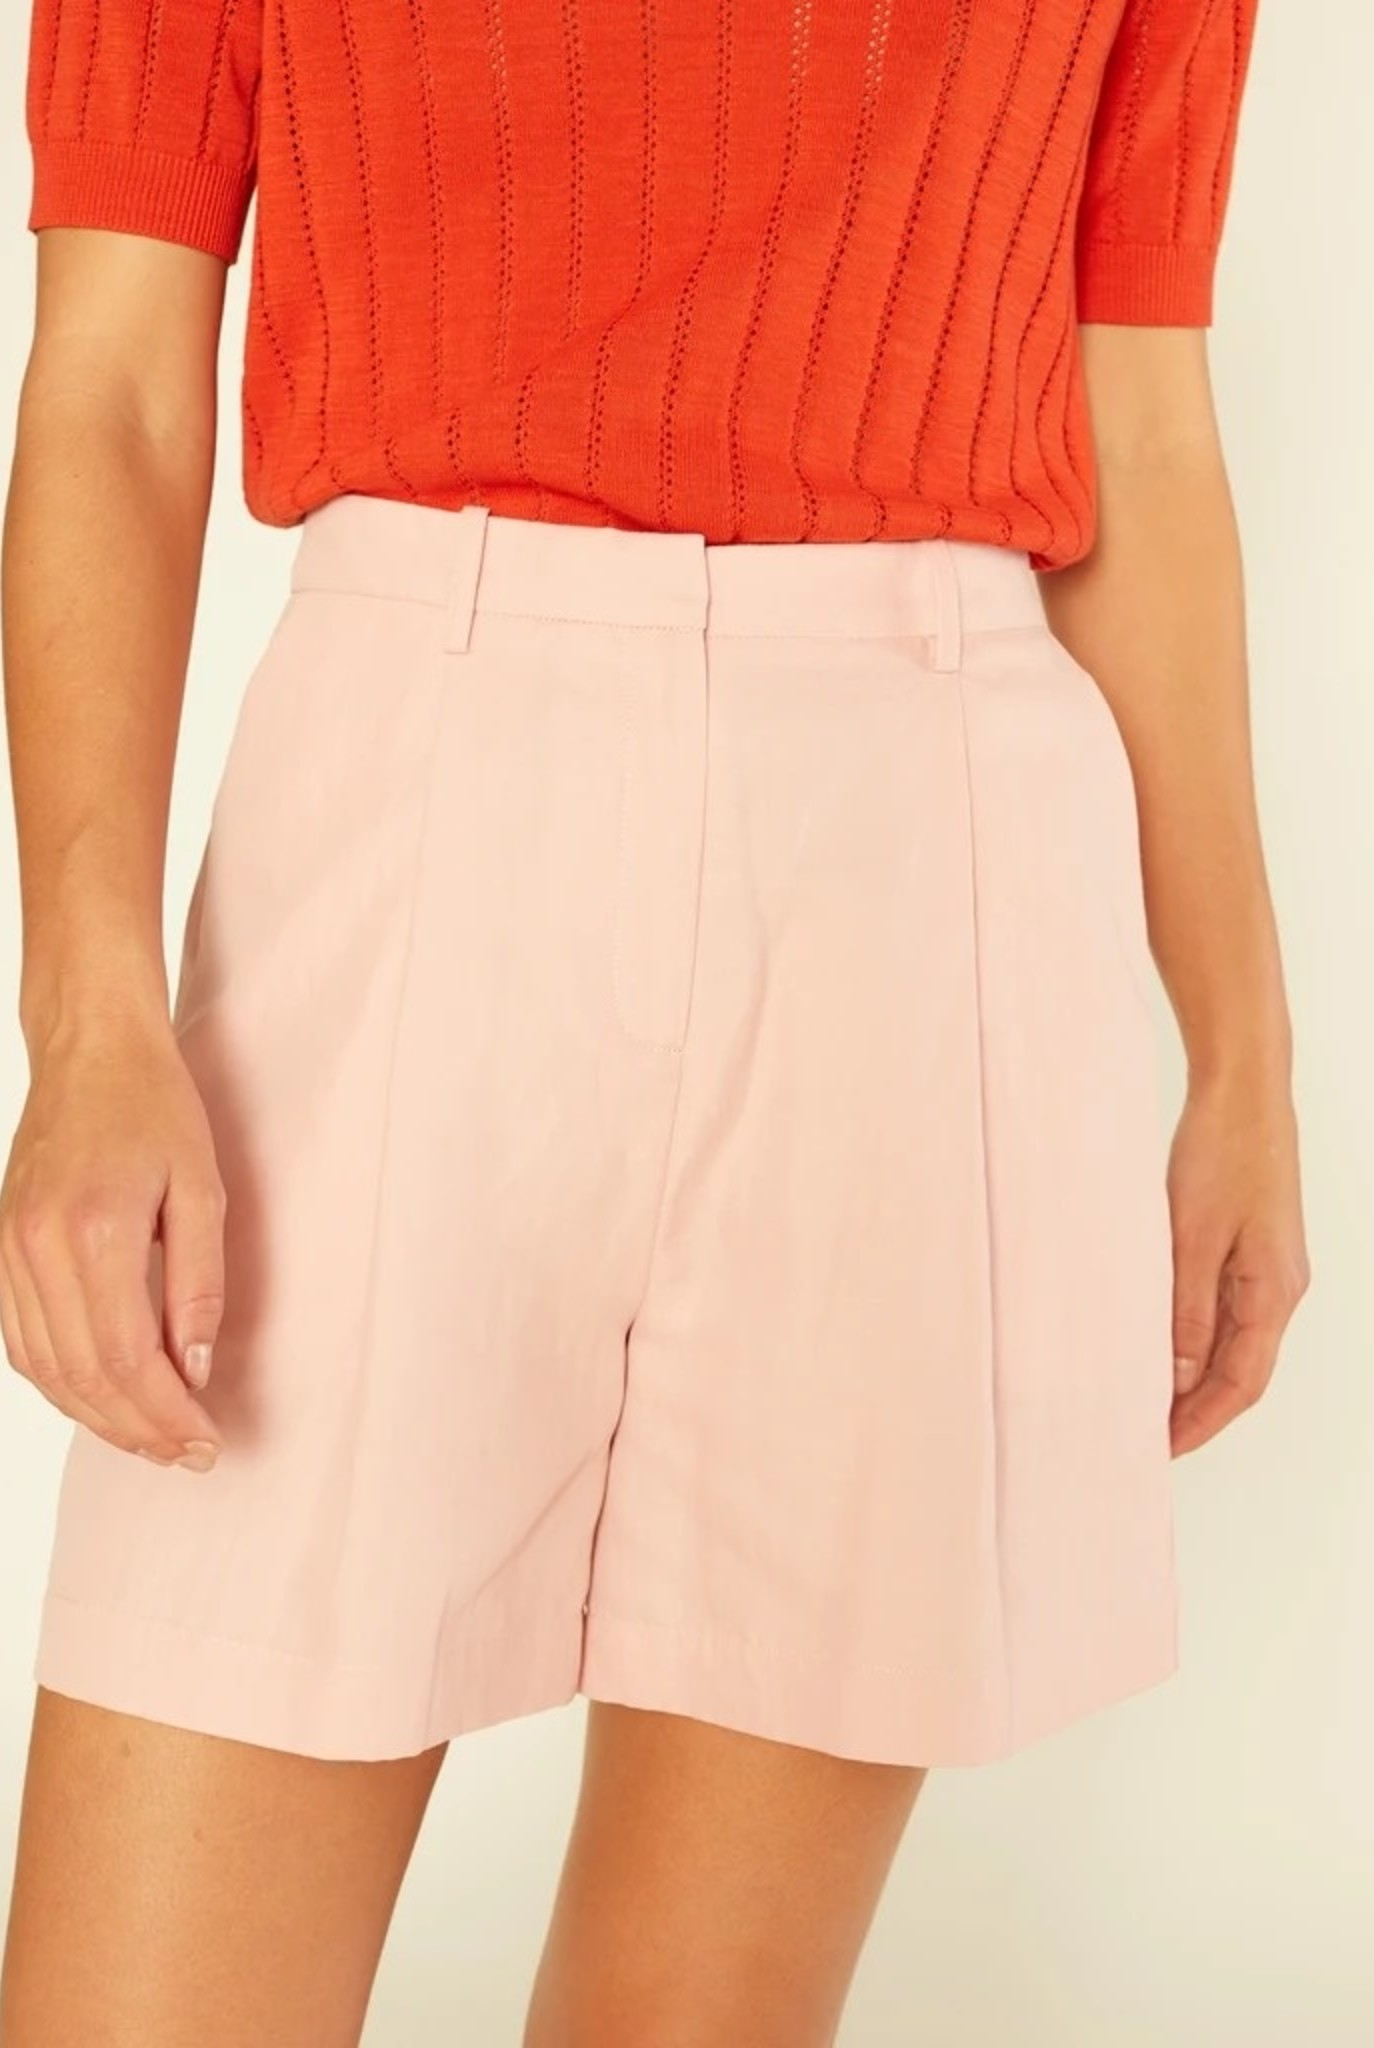 Gallileo shorts pink